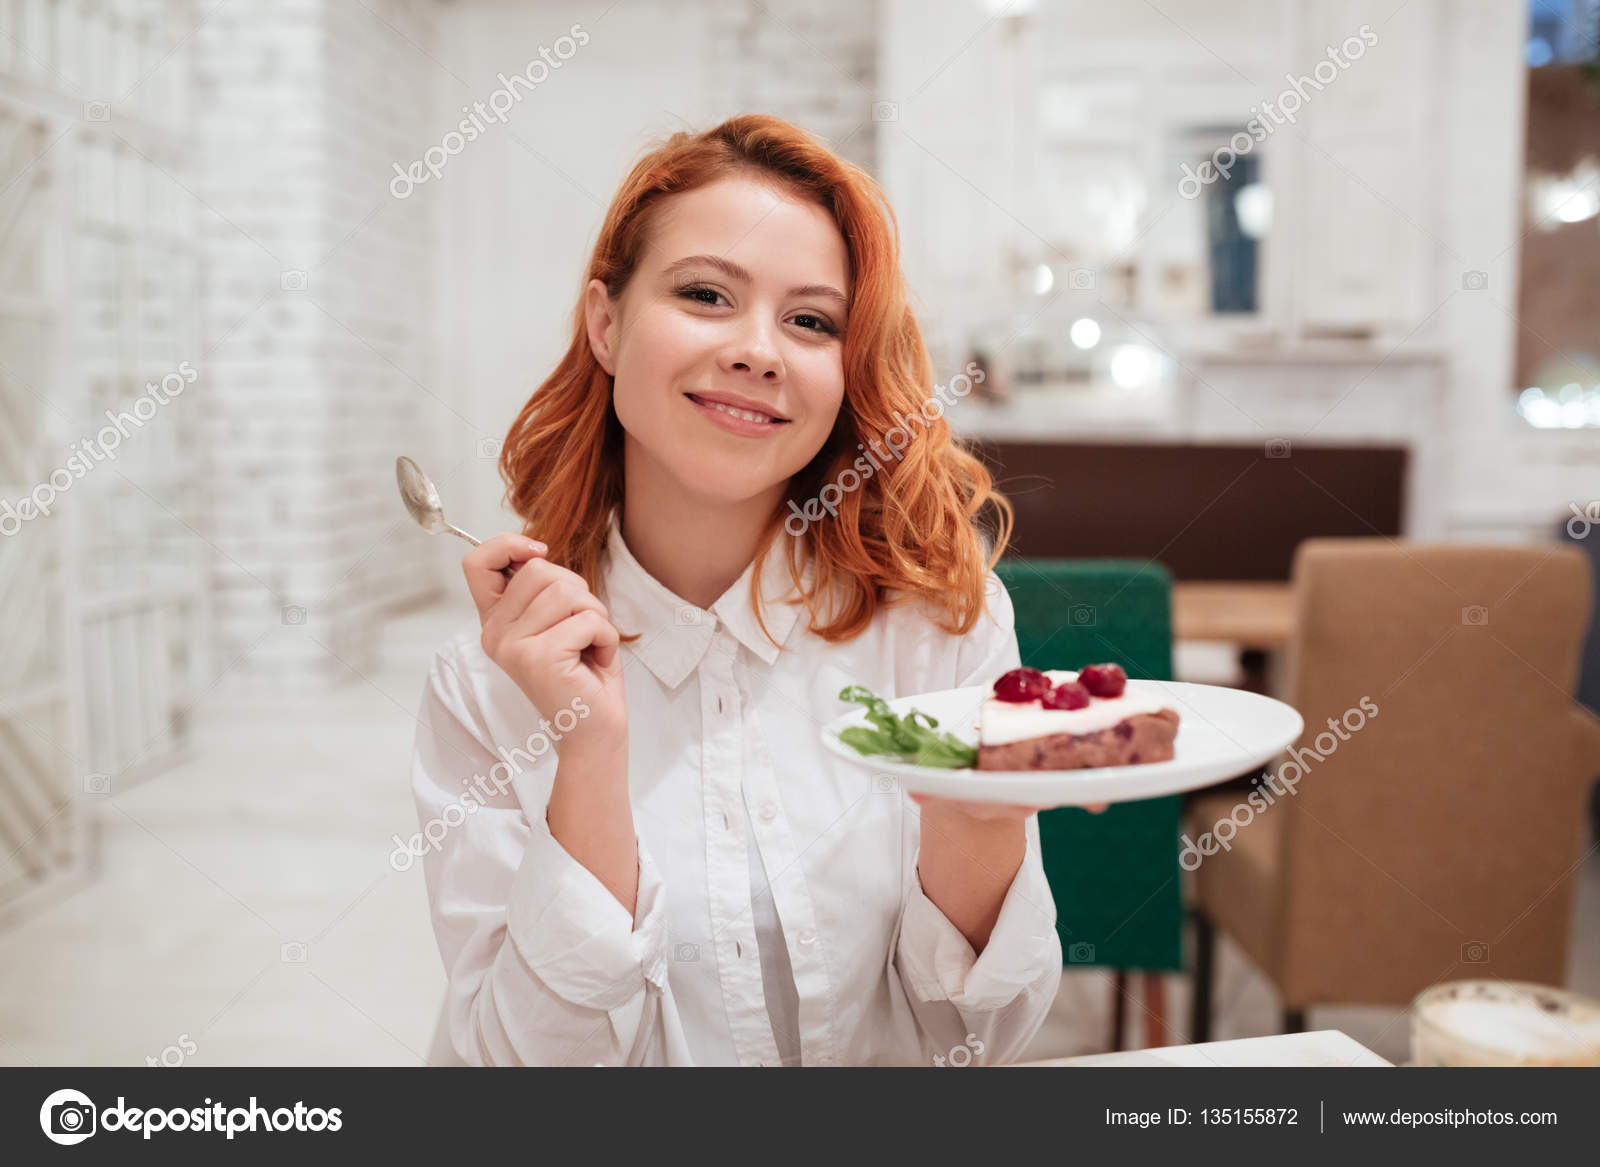 eating-redhead-adult